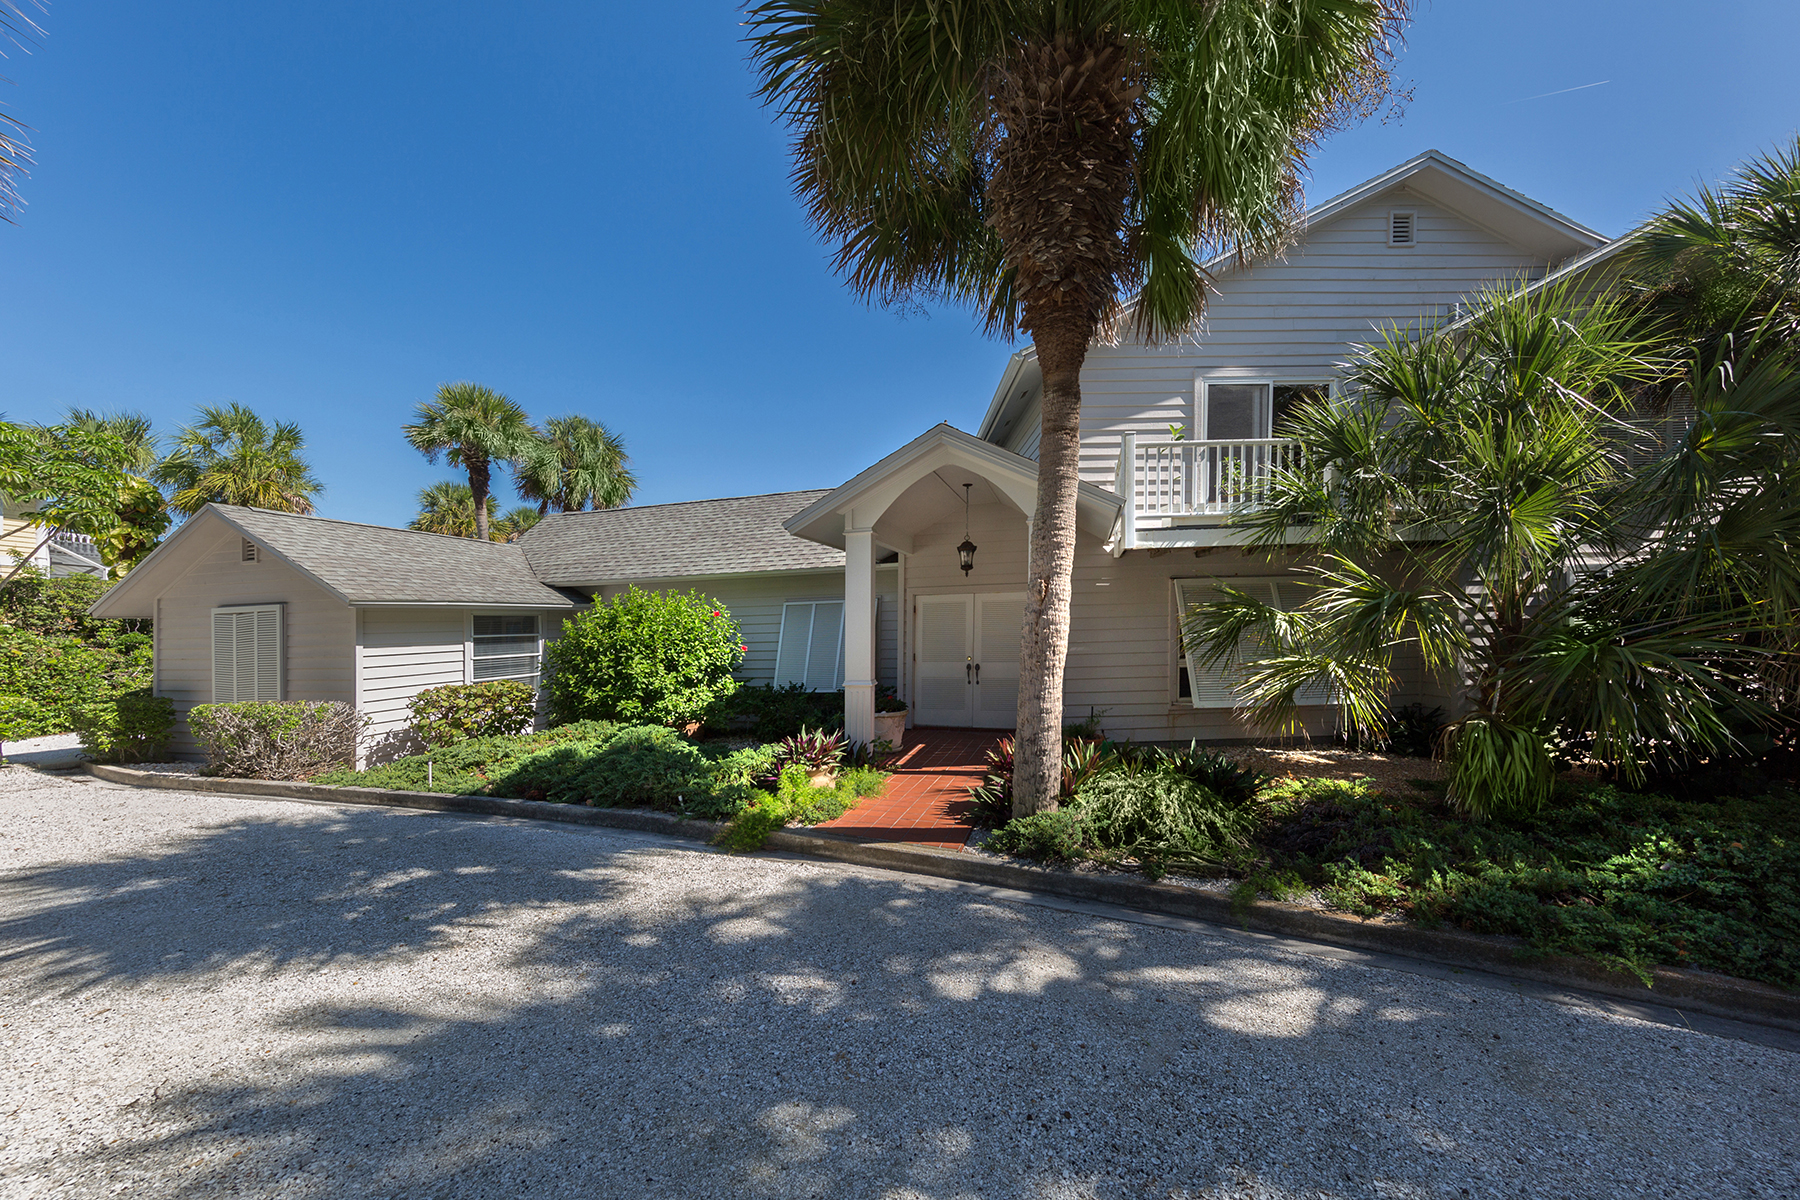 Single Family Home for Sale at CASEY KEY 3509 Casey Key Rd, Nokomis, Florida 34275 United States